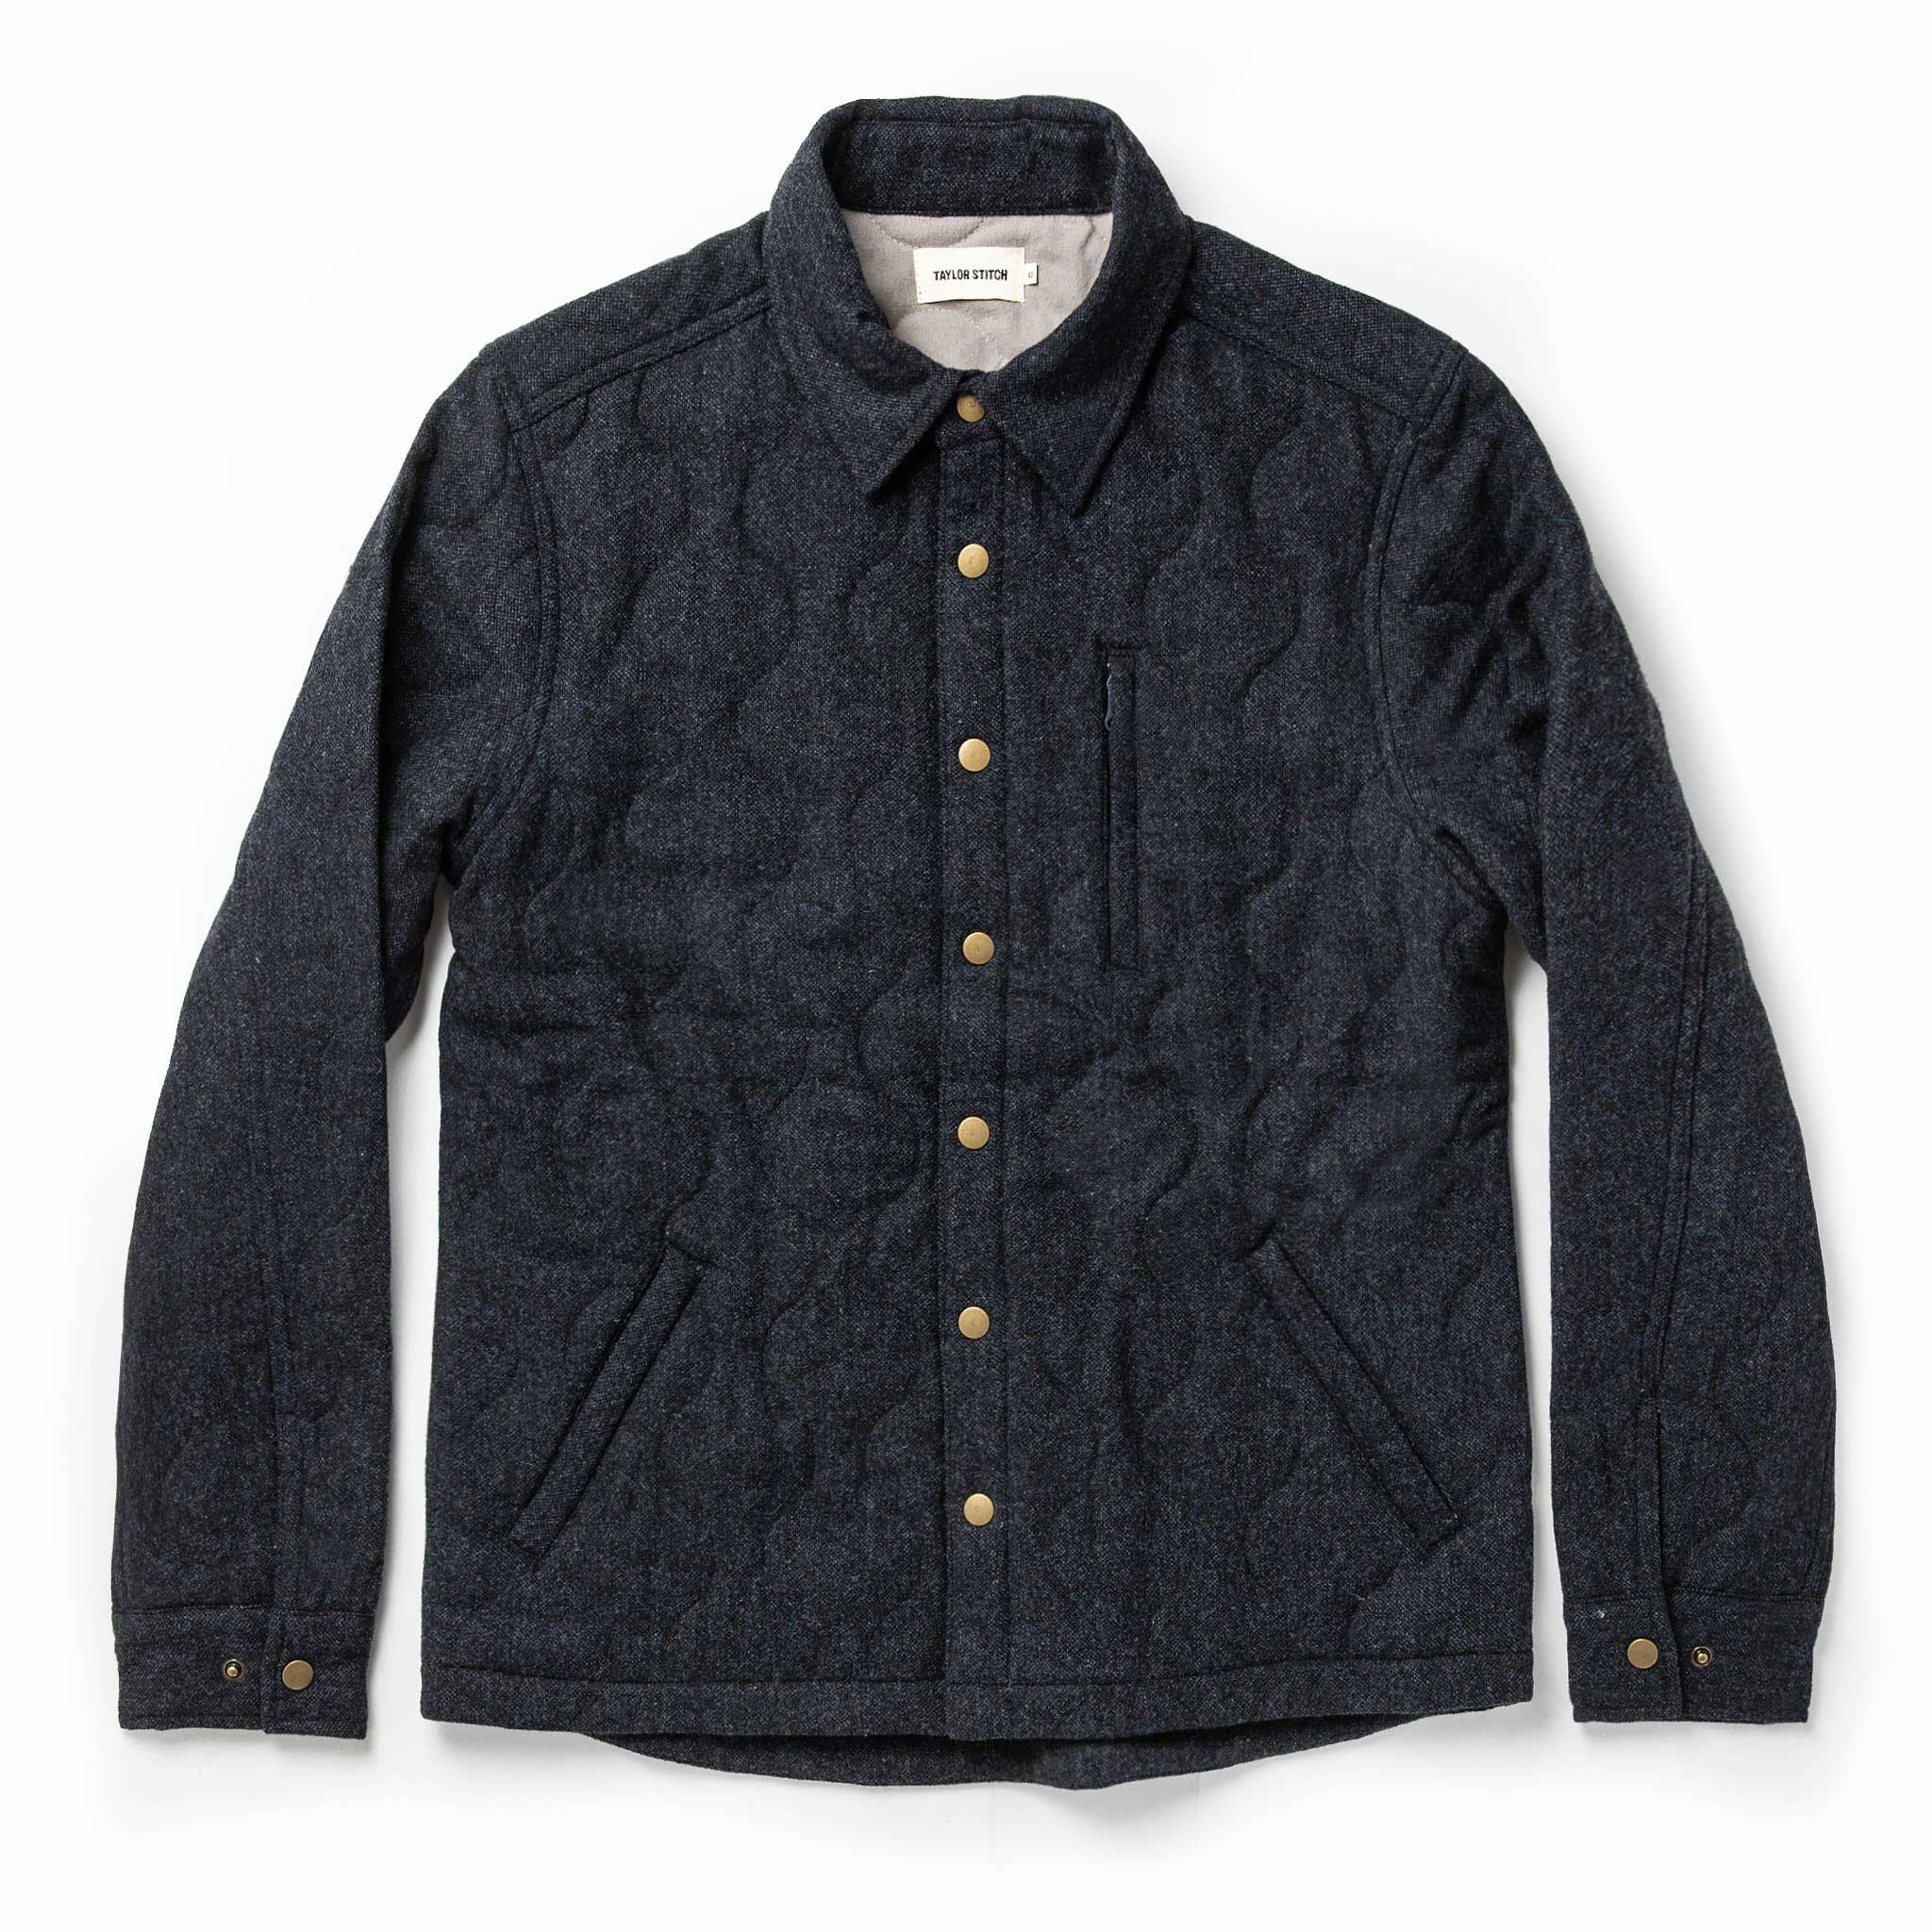 Taylor Stitch Wilton Jacket